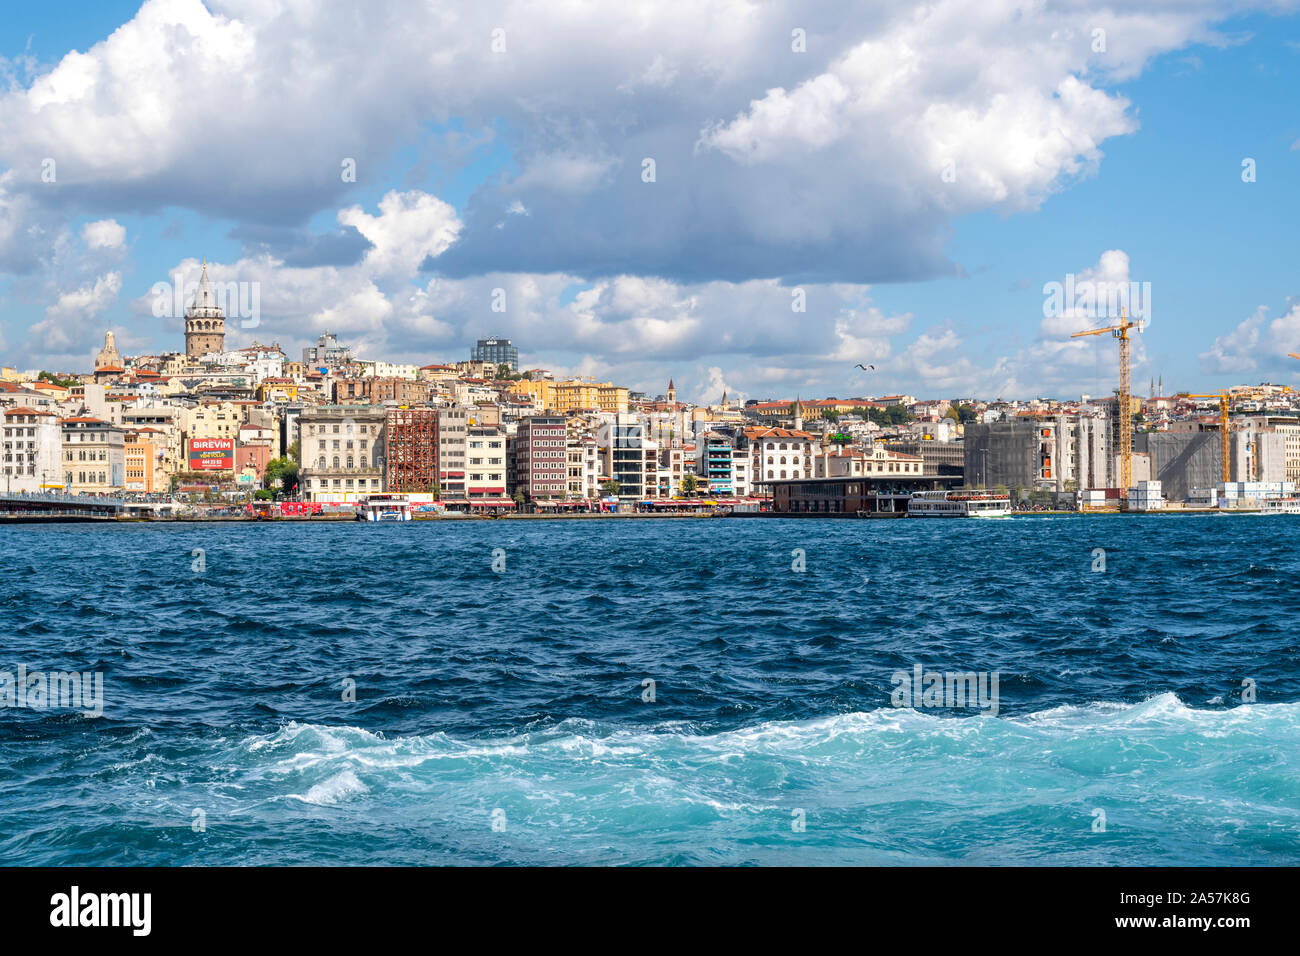 A view of the ancient Galata Tower, the Galata Bridge, the Bosphorus river and skyline of Istanbul, Turkey at the Golden Horn. Stock Photo